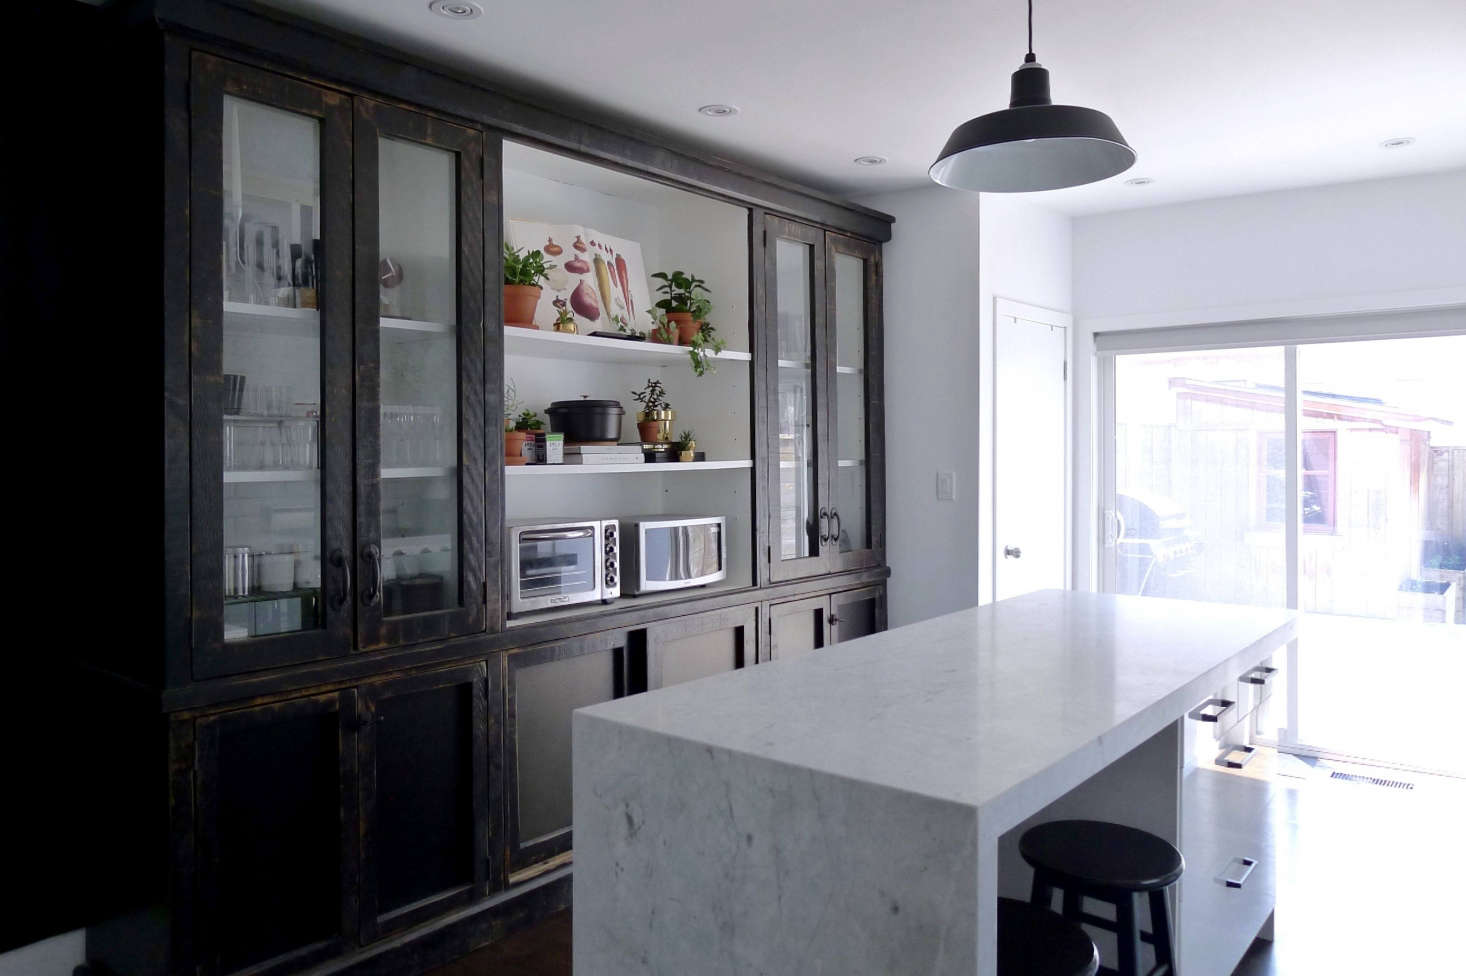 Best Amateur Kitchen: Rustic and Refined in Toronto by Zachary Leung on best furniture store, kitchen collection store, family kitchen store, best jewelry store, big kitchen store, best hardware store, home kitchen store, kitchen accessories store, best dvd store, best travel store, house kitchen store, best interior store, best beauty store, kitchen gourmet store, best water store, best clothing store, kitchen appliances store, best grocery store, kitchen supply store, best shoes store,